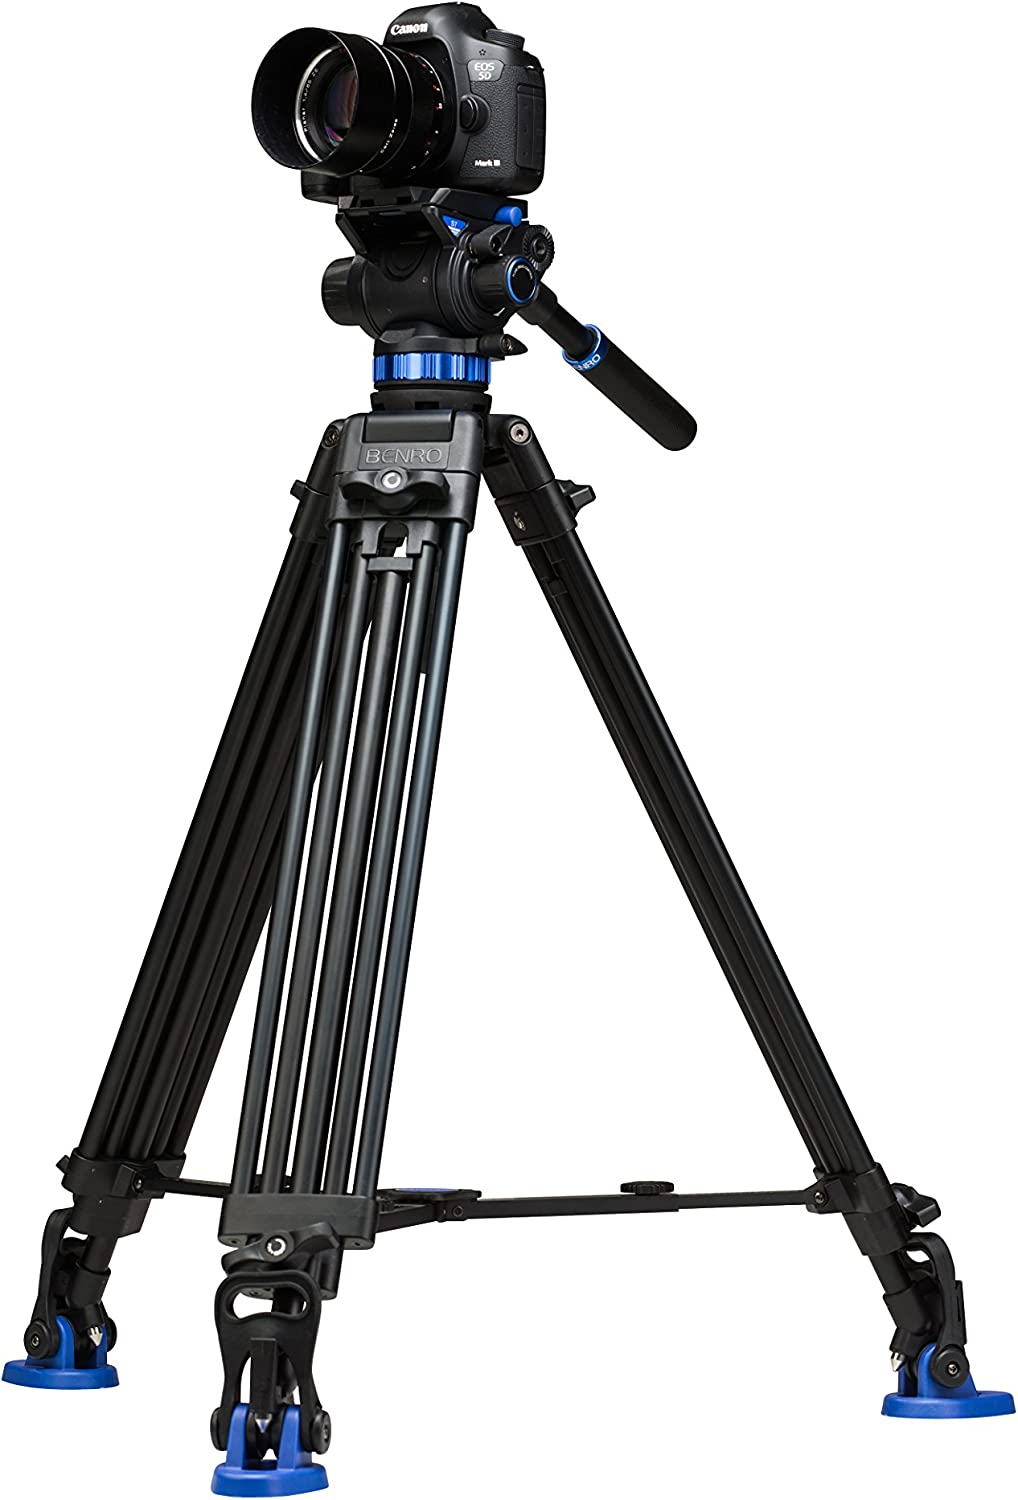 Benro C373F Series 3 CF Video Tripod & BV4H Head - 3 Leg Sections, Flip Lock Leg Release (C373FBV4H)